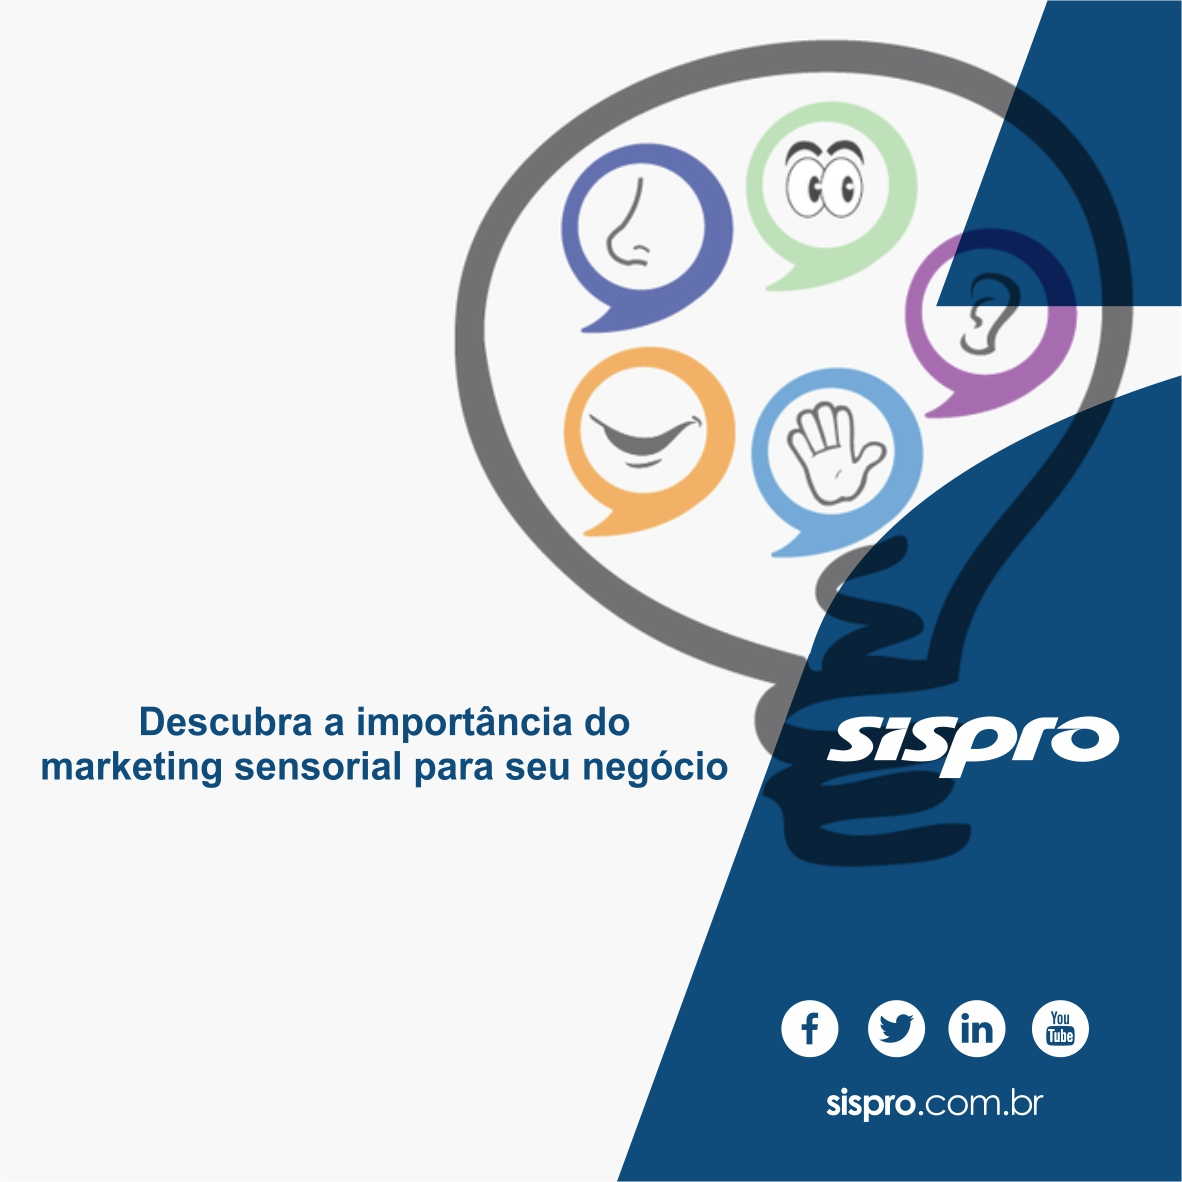 descubra-a-importancia-do-marketing-sensorial-para-seu-negocio